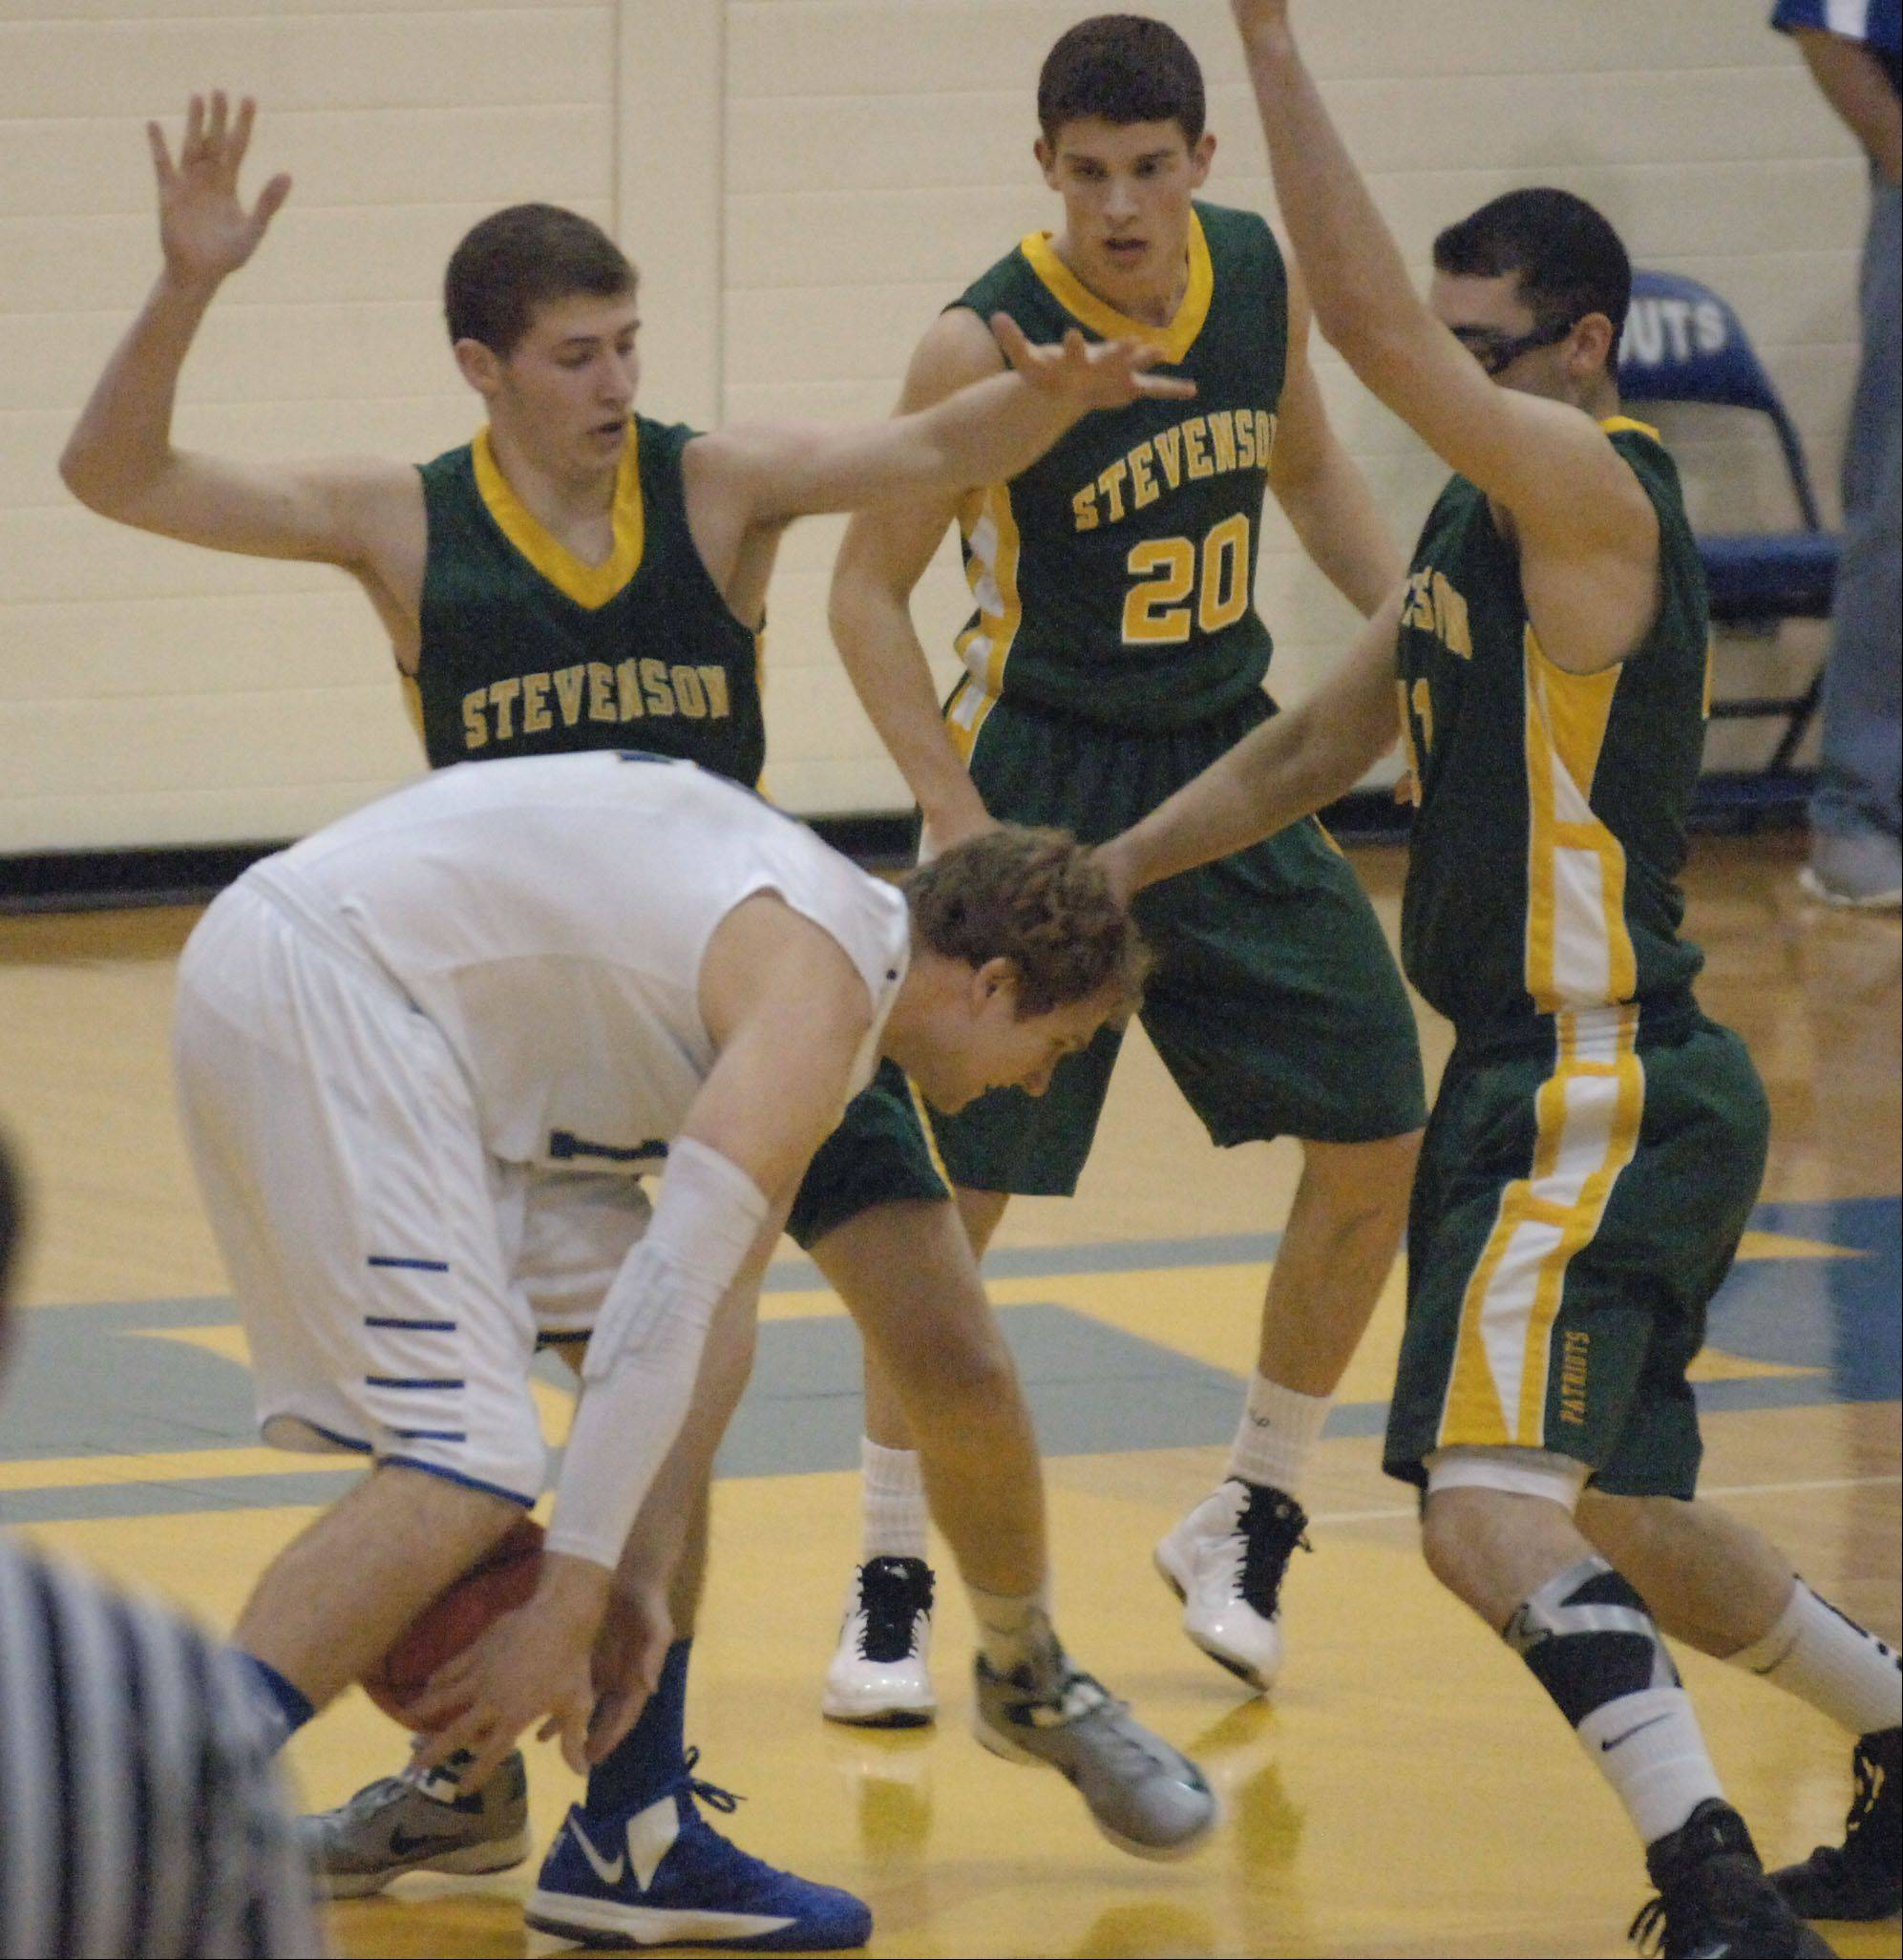 Lake Forest's Evan Boudreaux is pressured by Stevenson players from left Andrew Stempel, Matthew Morrissey, and Adam Cohen during Tuesday night's boys basketball game in Lake Forest.